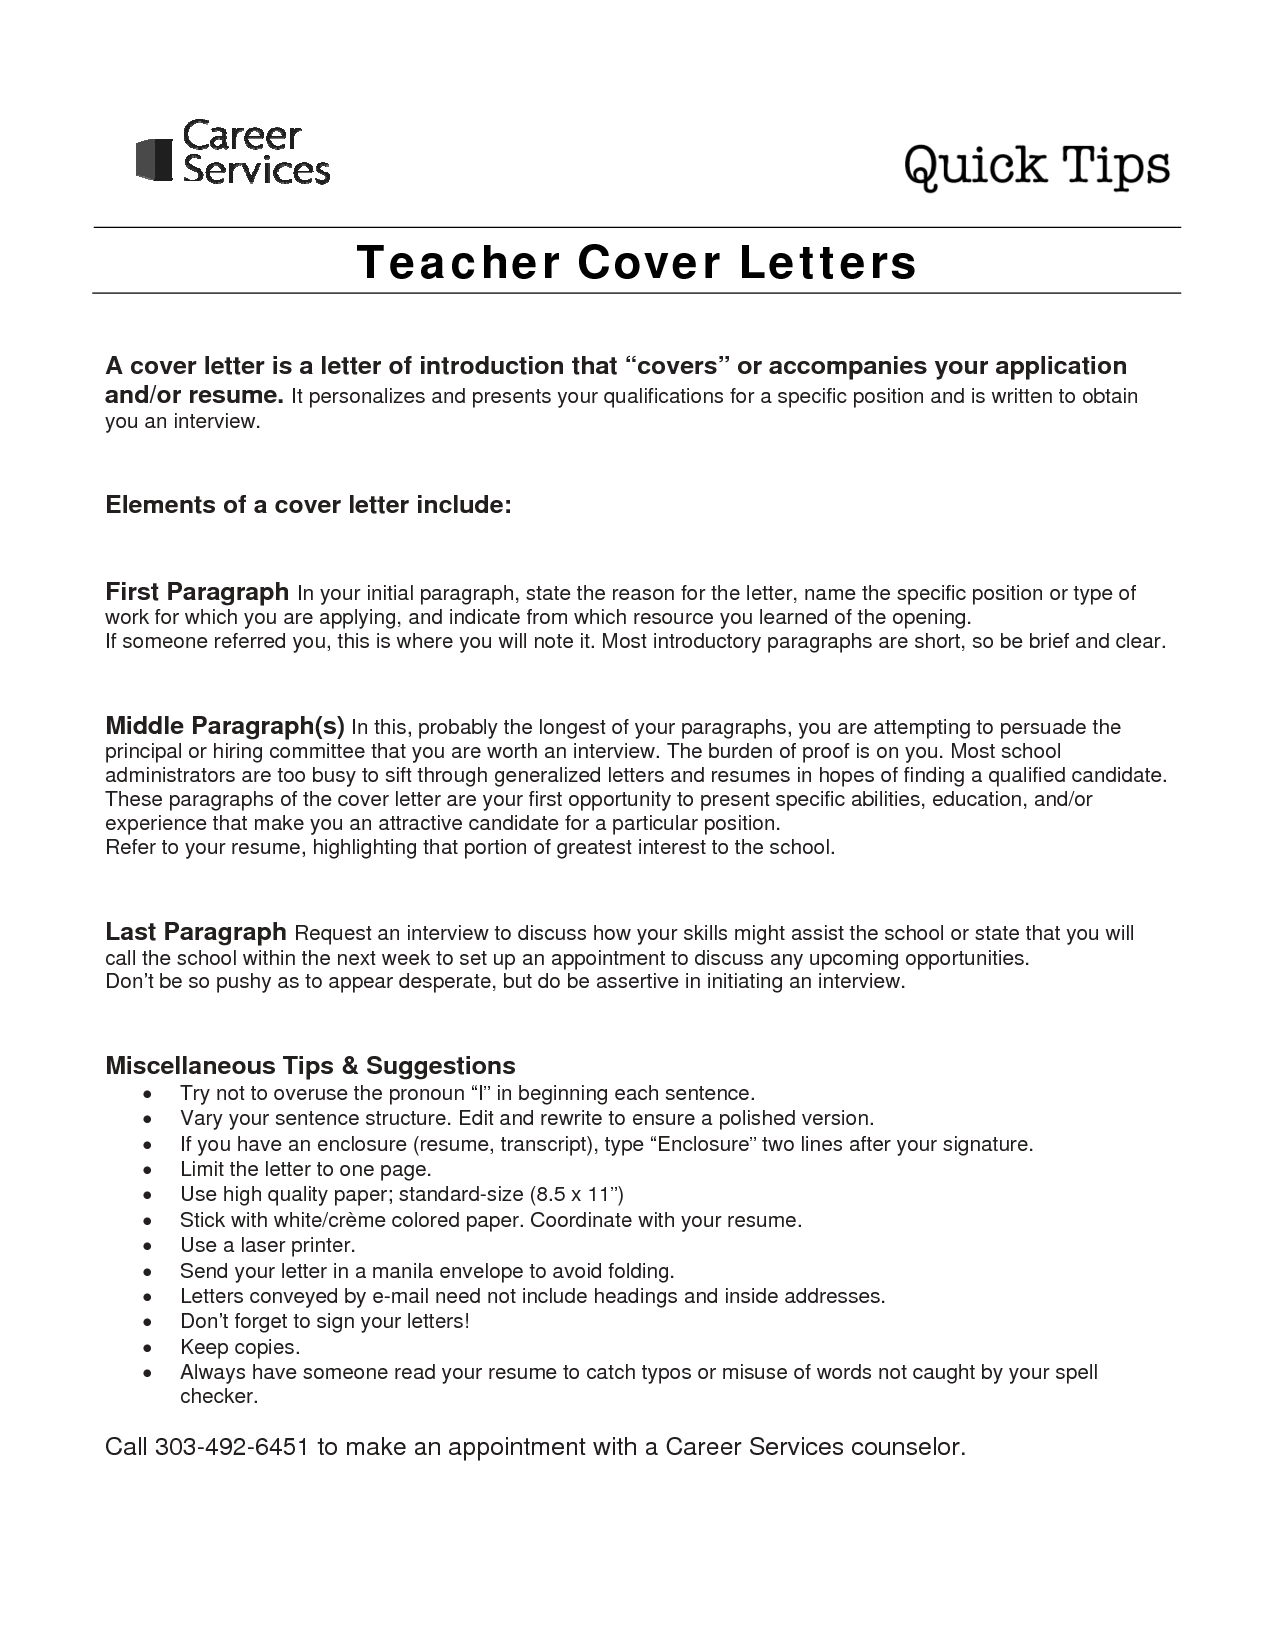 Builder Teachers Resume Template For Sample Cover Letter Teacher Training  High School